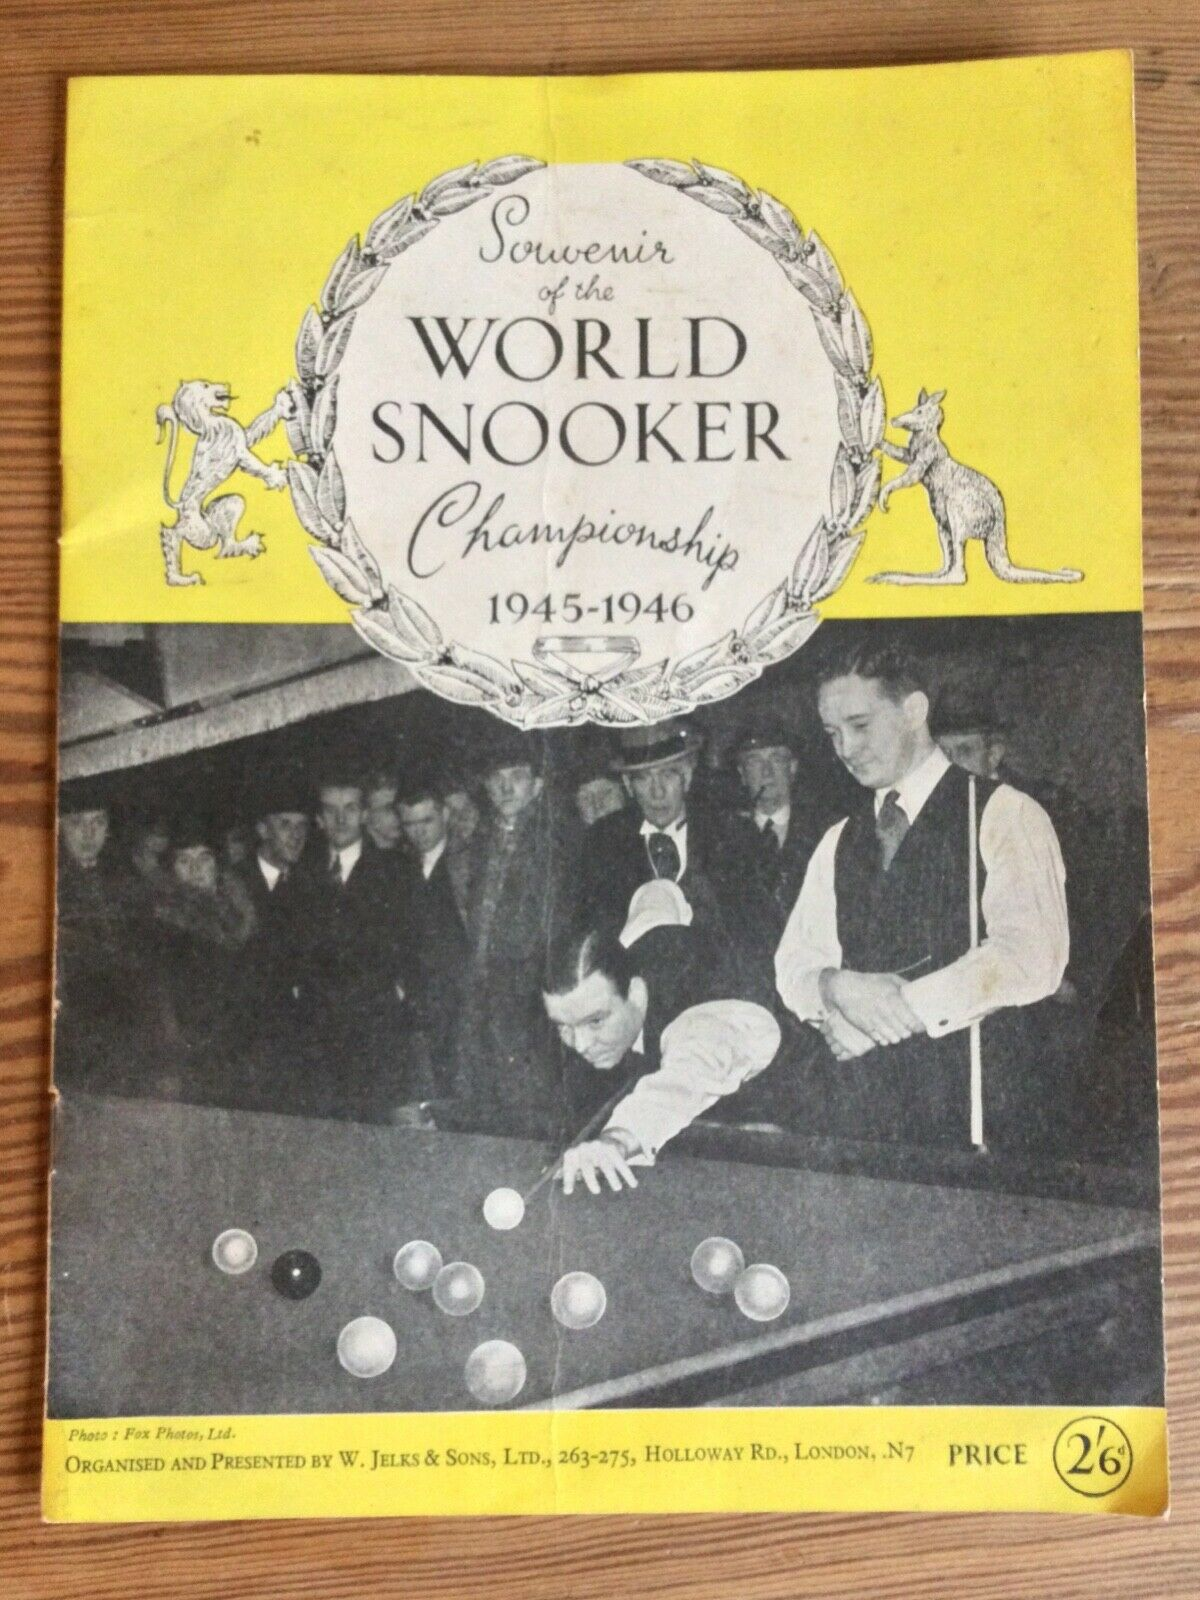 Rare old vintage World Snooker Championship Final Souvenir Programme 1945-46